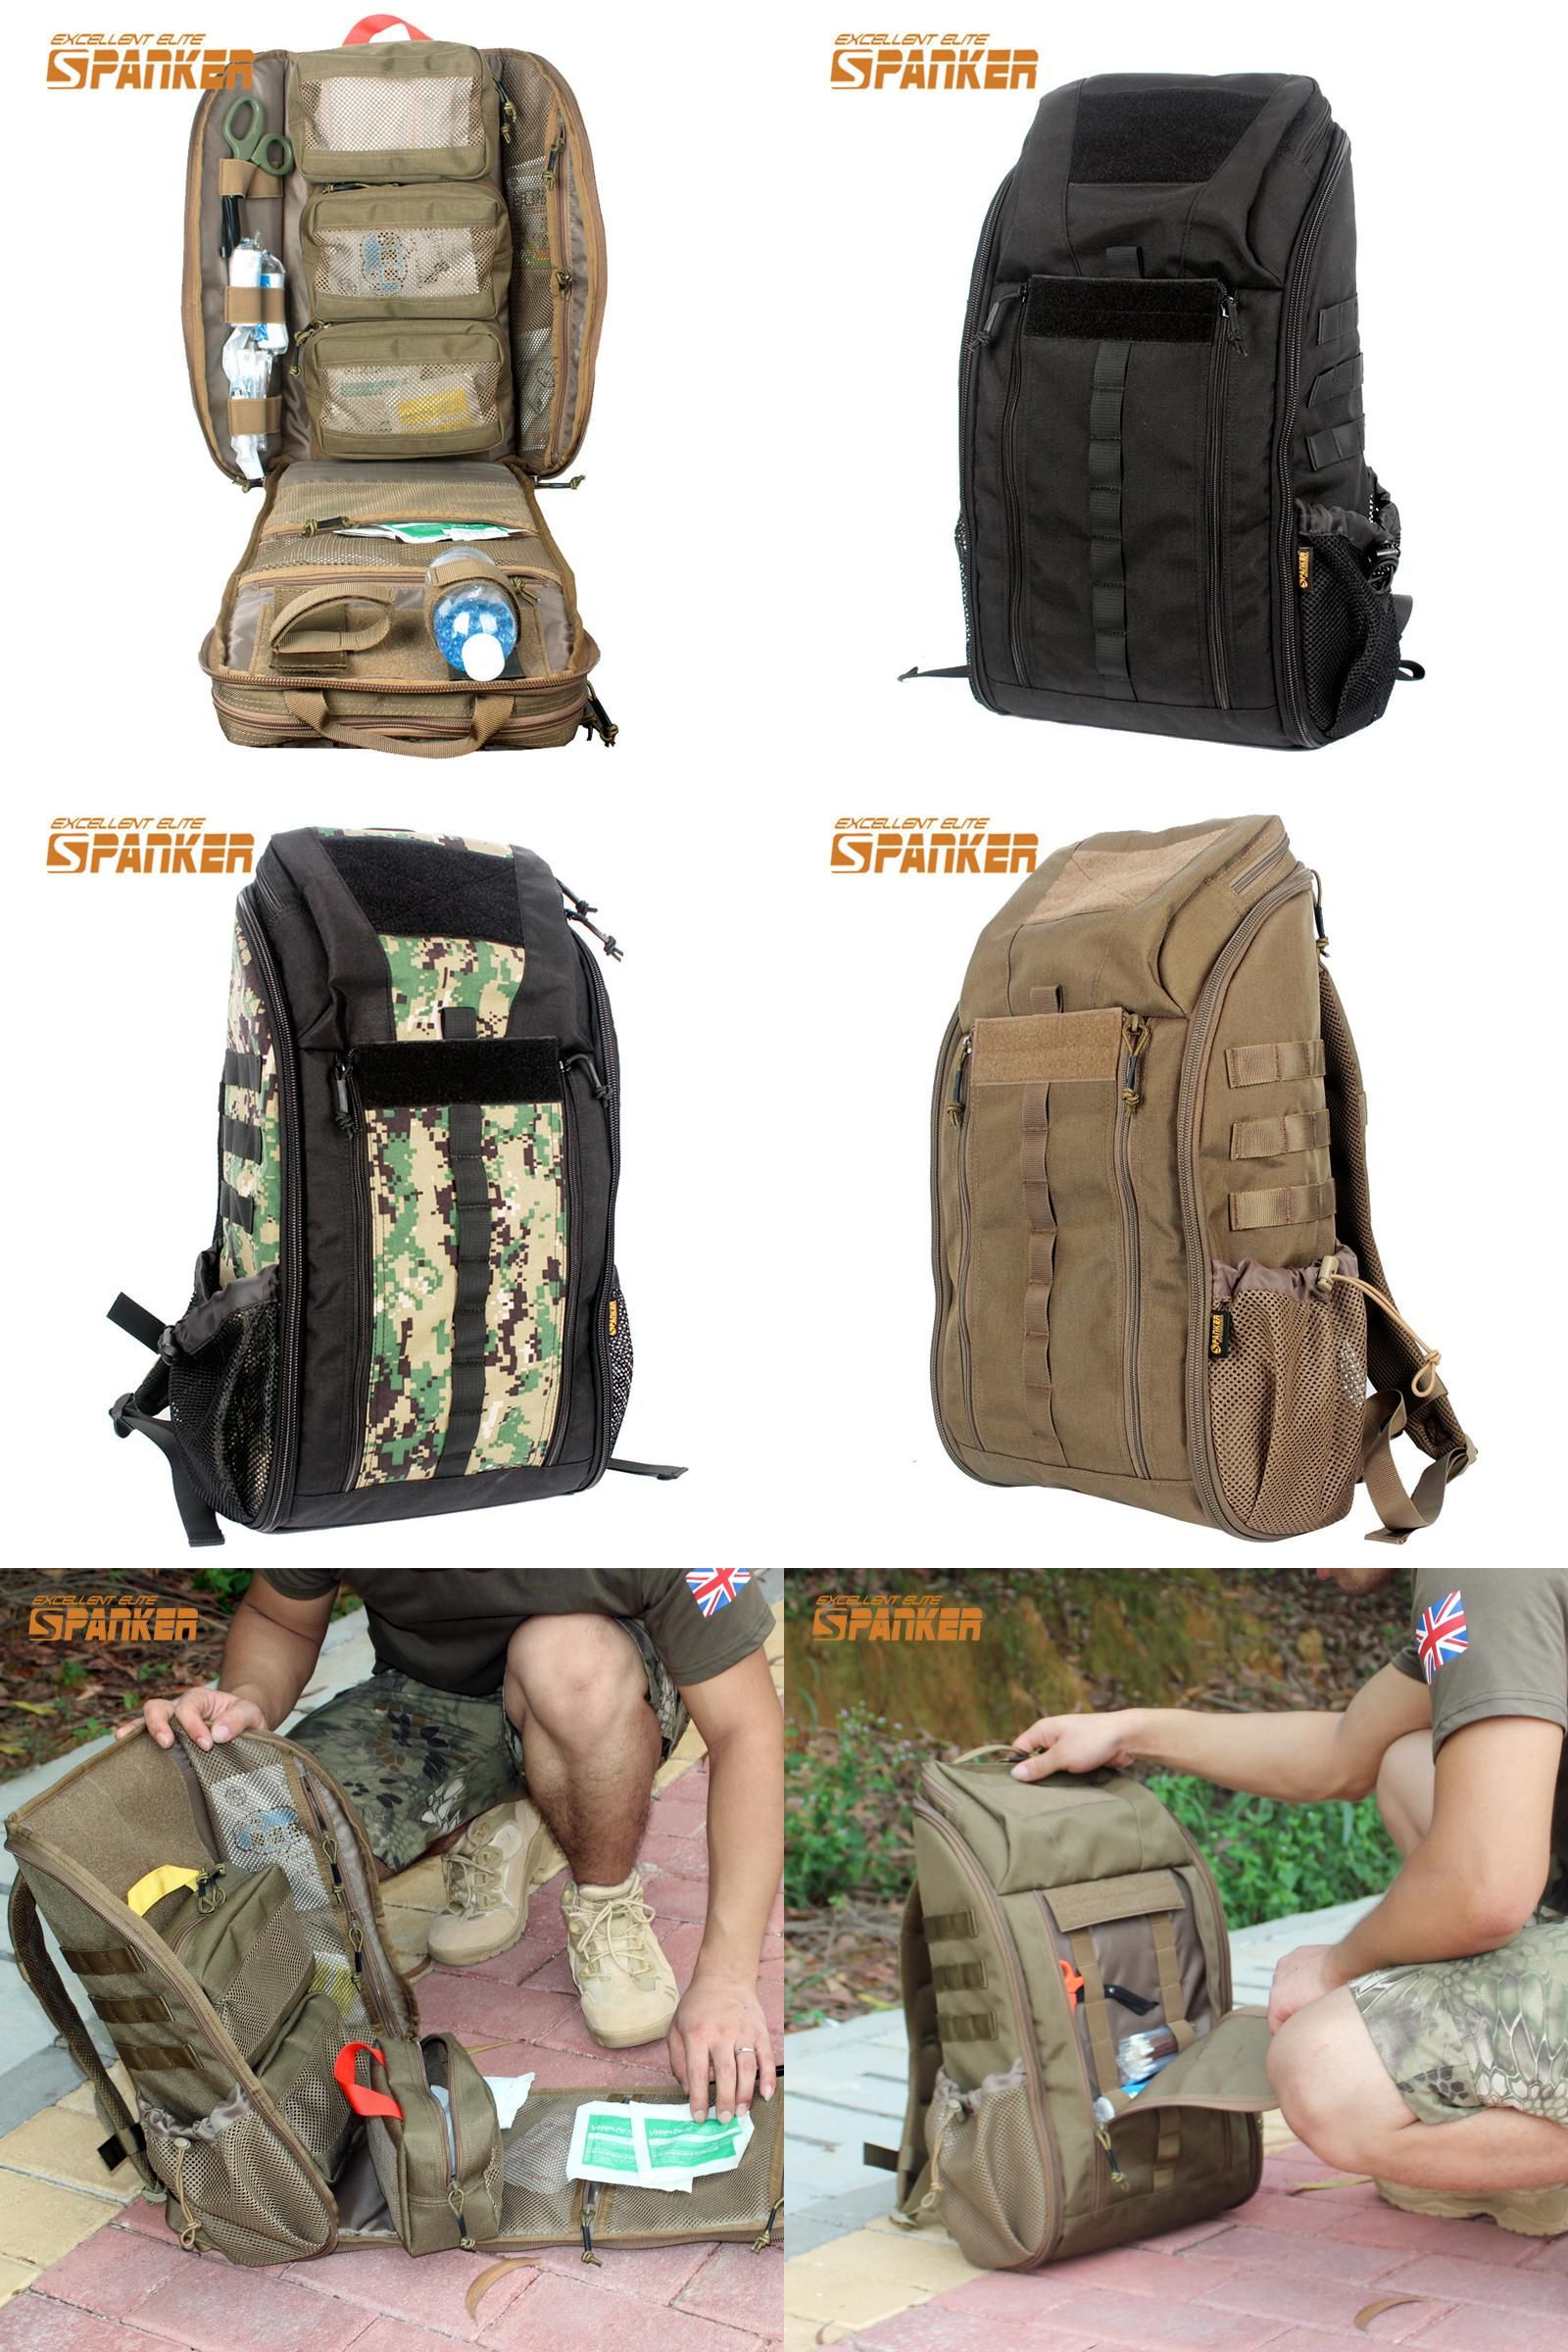 b5b9f46702209f [Visit to Buy] SPANKER Tactical MOLLE Medical Backpack Military First Aid  Kit Backpack Emergency Assault Combat Rucksack Outdoor Hunting Bags  #Advertisement